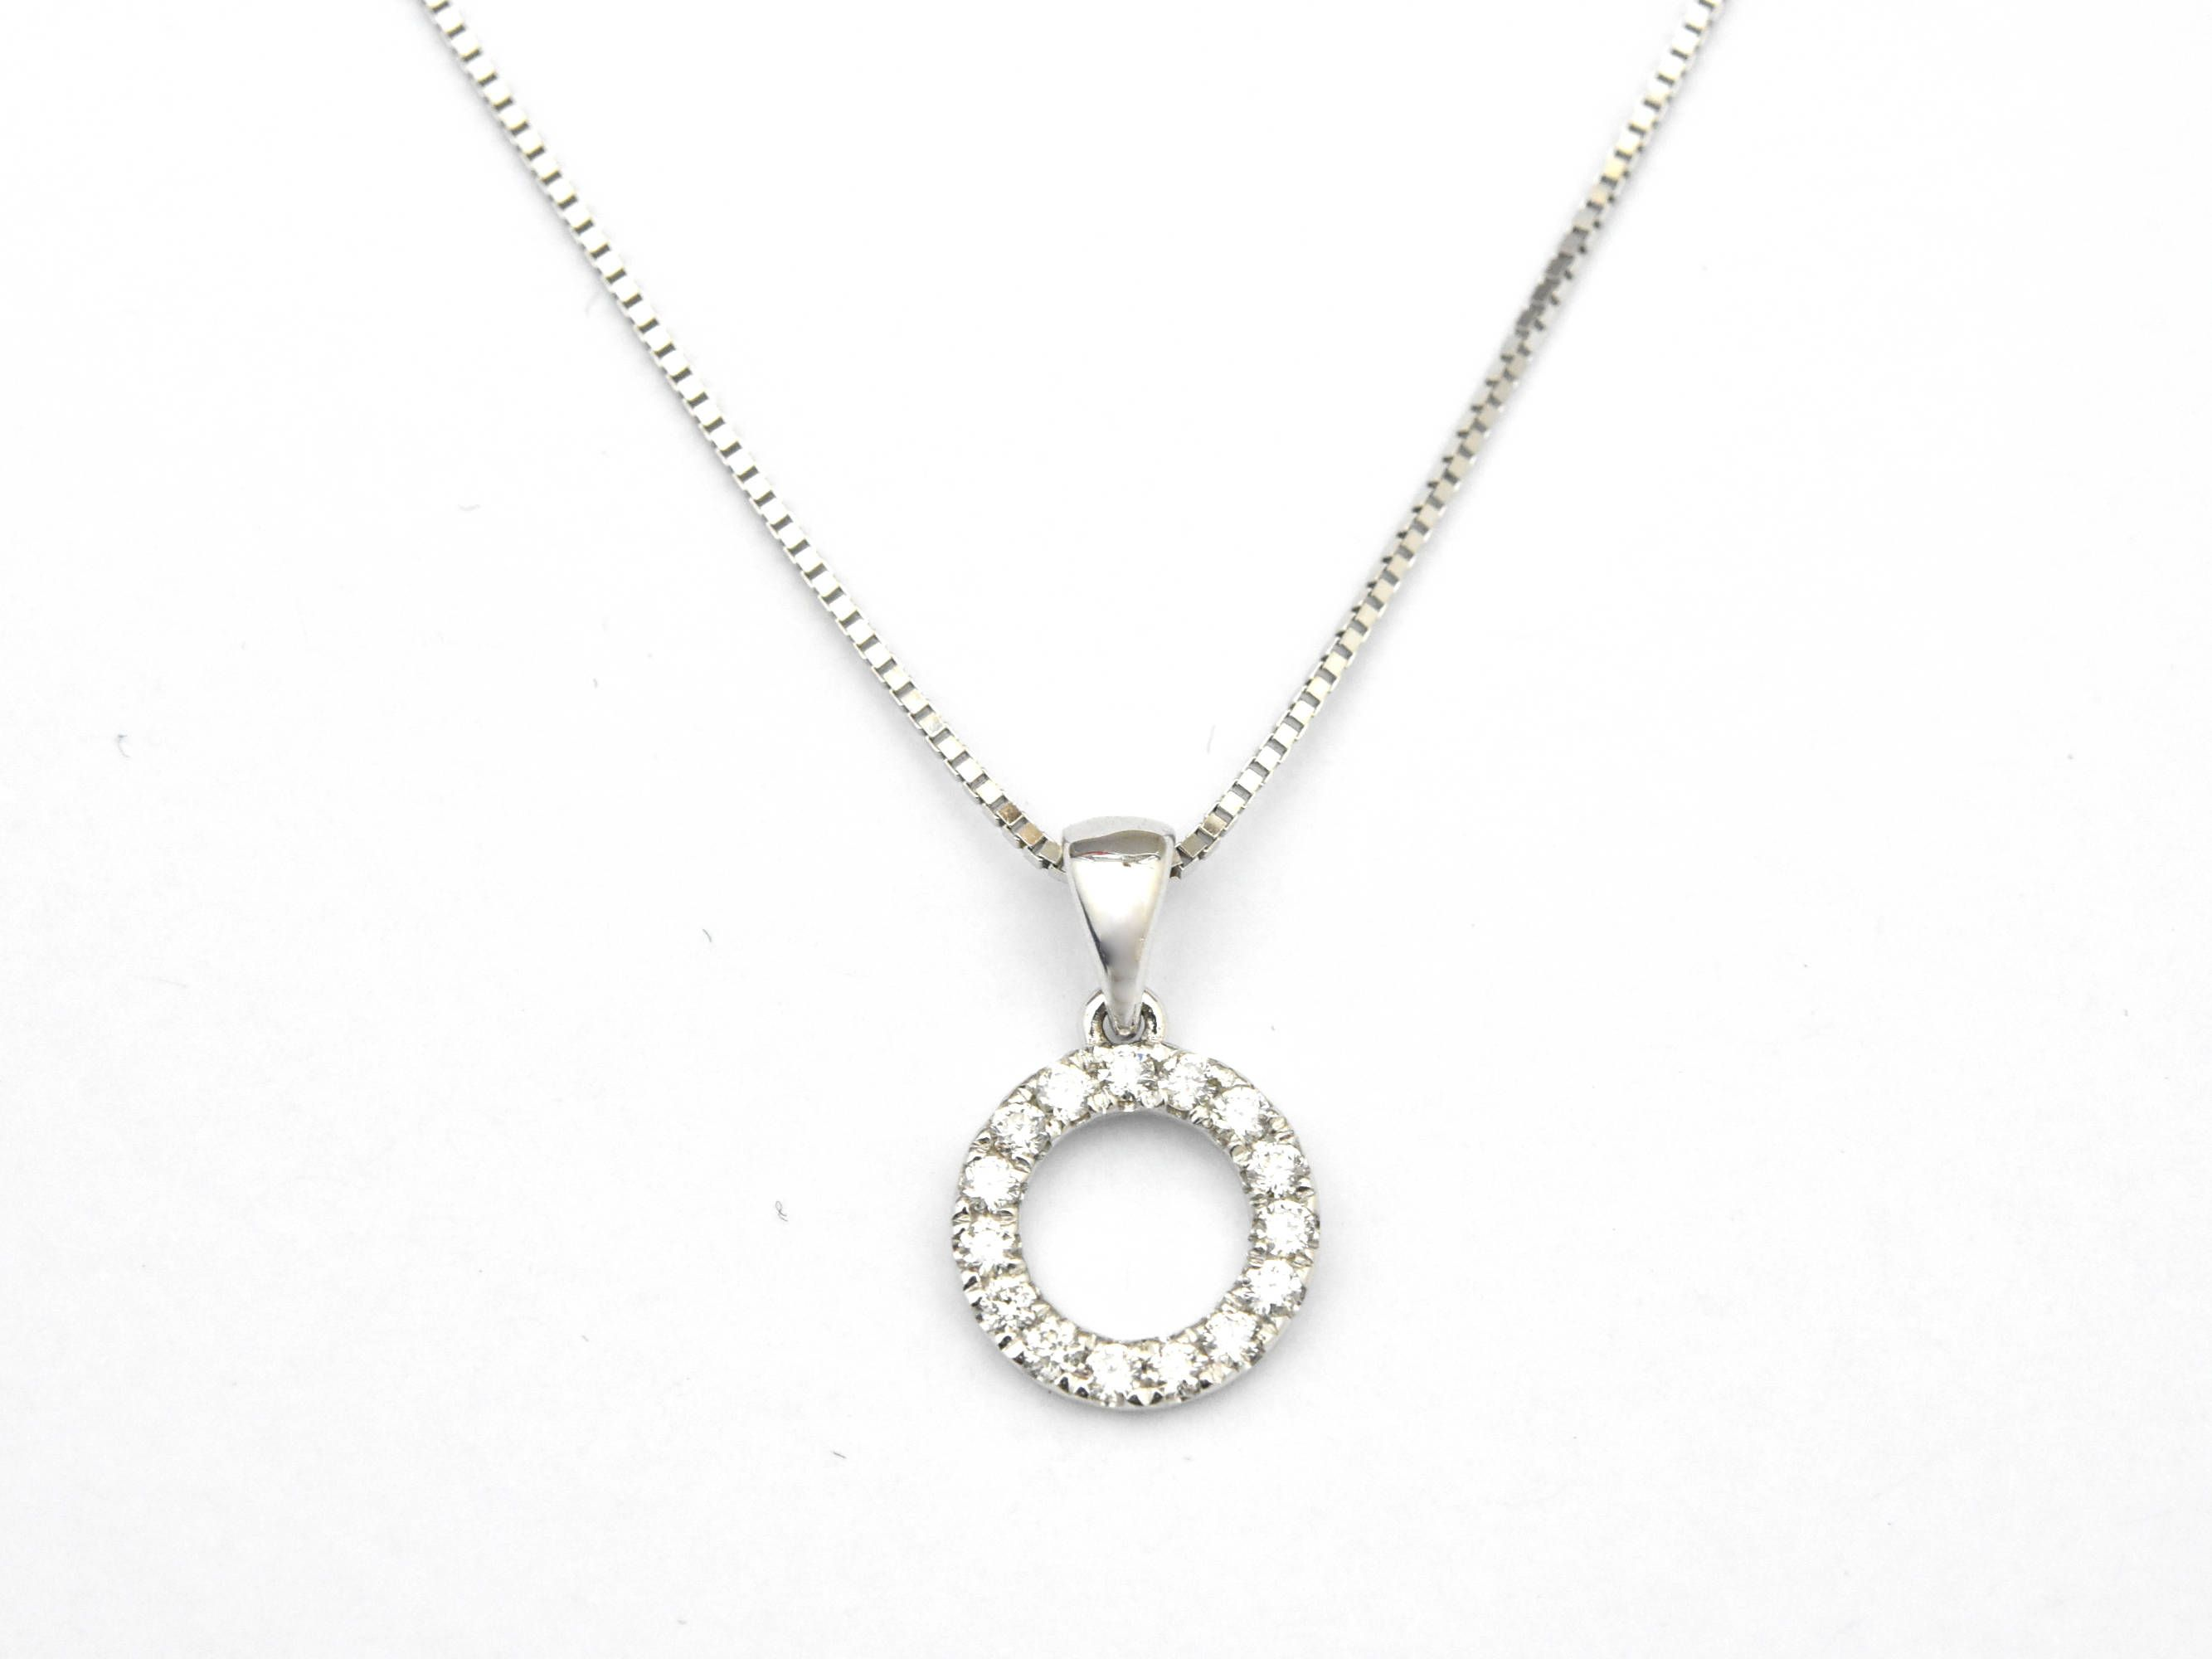 home diamond necklace necklaces circle product nature open shiny adp